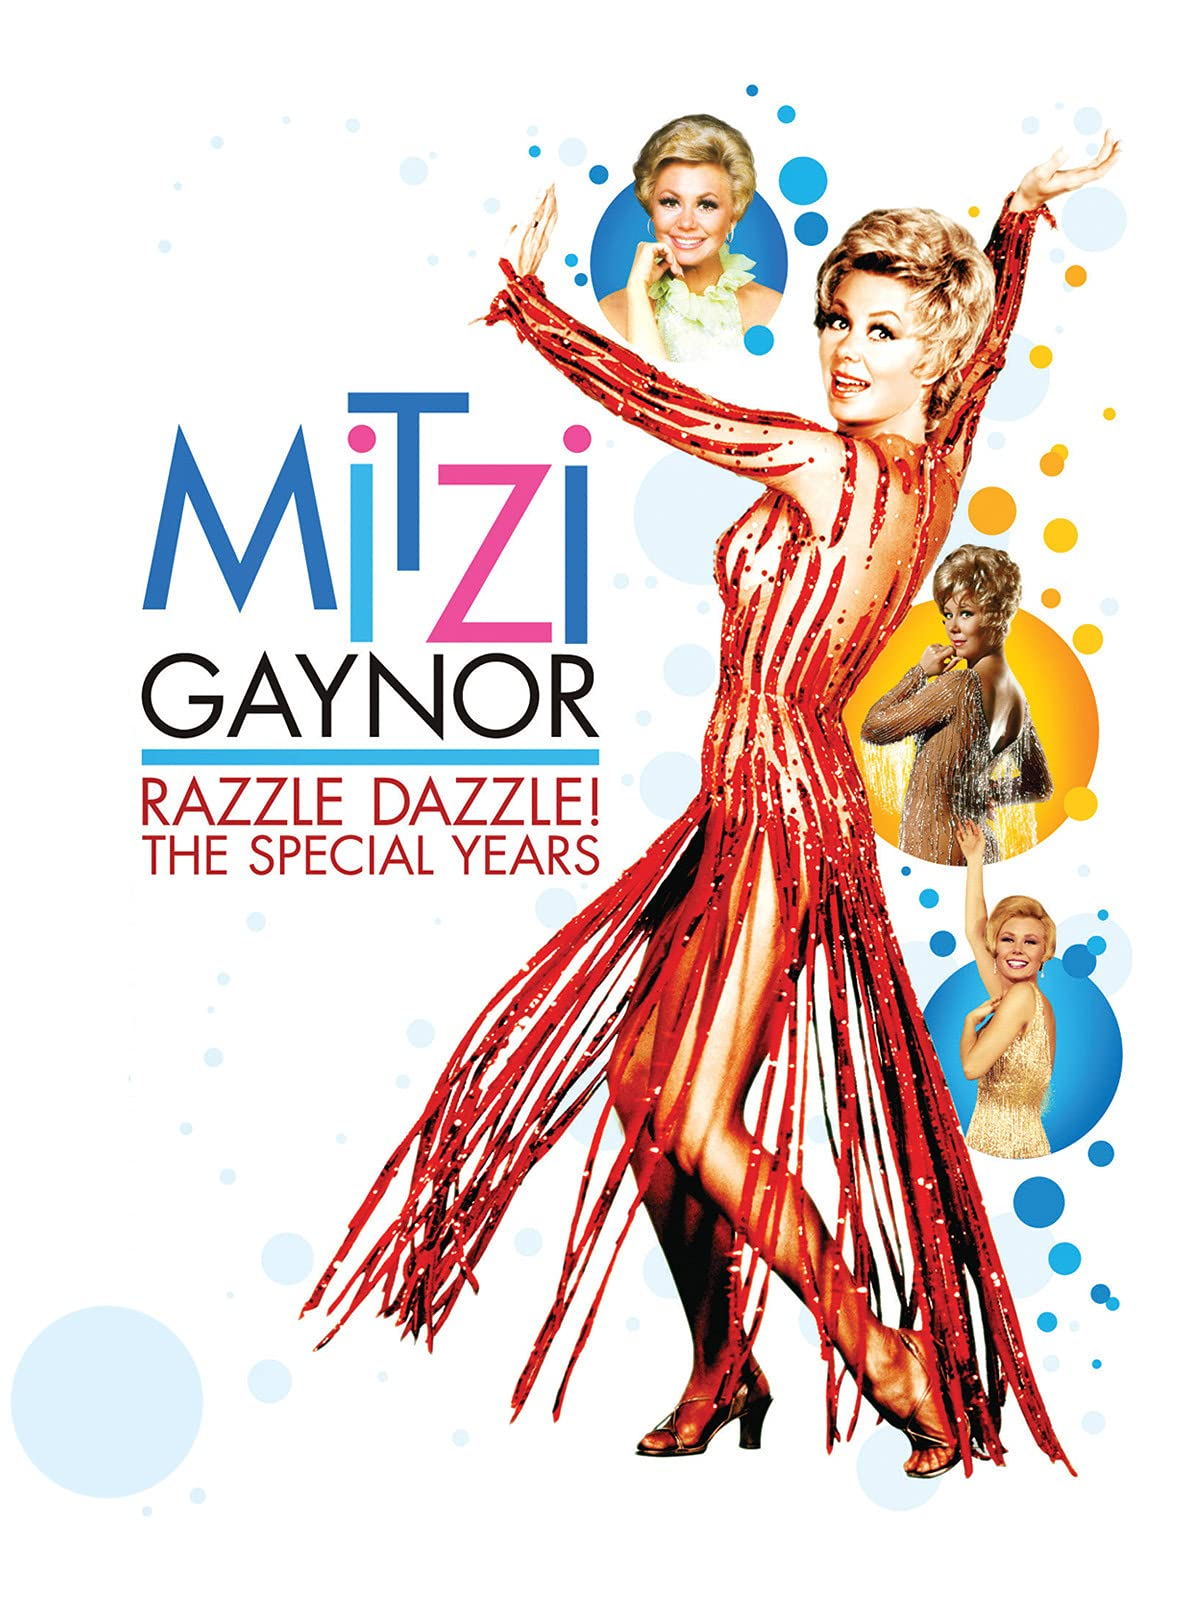 Mitzi Gaynor Razzle Dazzle! The Special Years on Amazon Prime Video UK